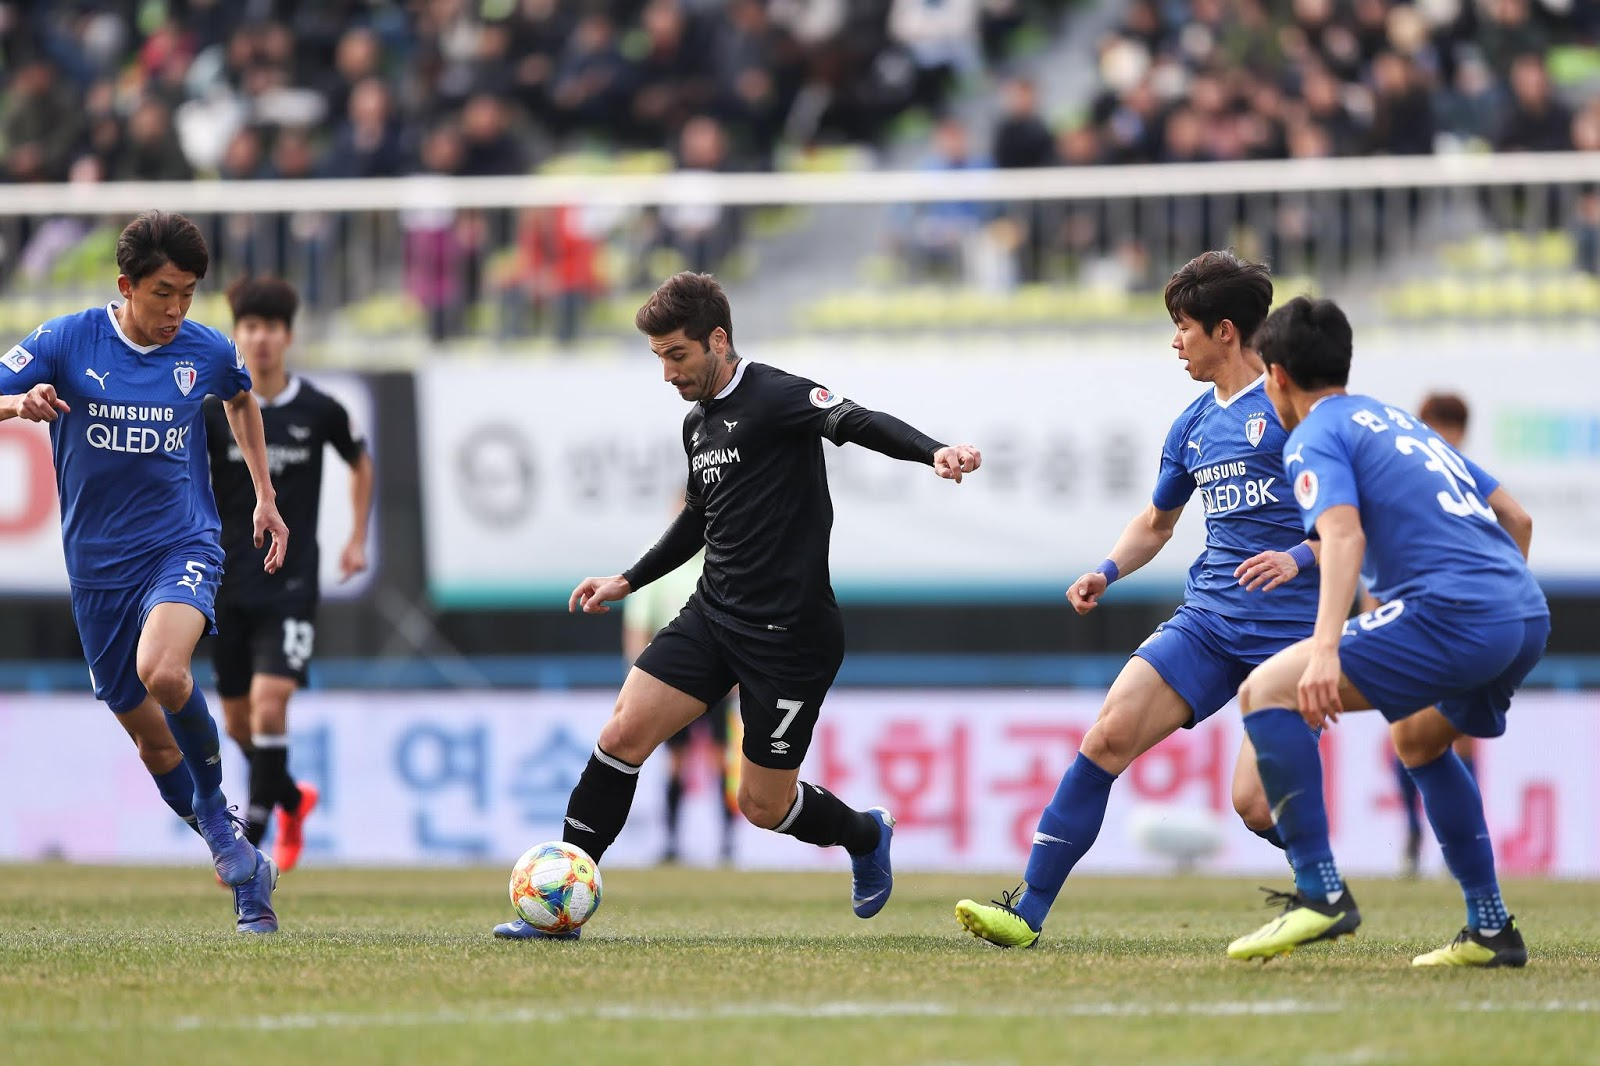 K League 1 Preview: Seongnam FC vs Jeonbuk Hyundai Motors